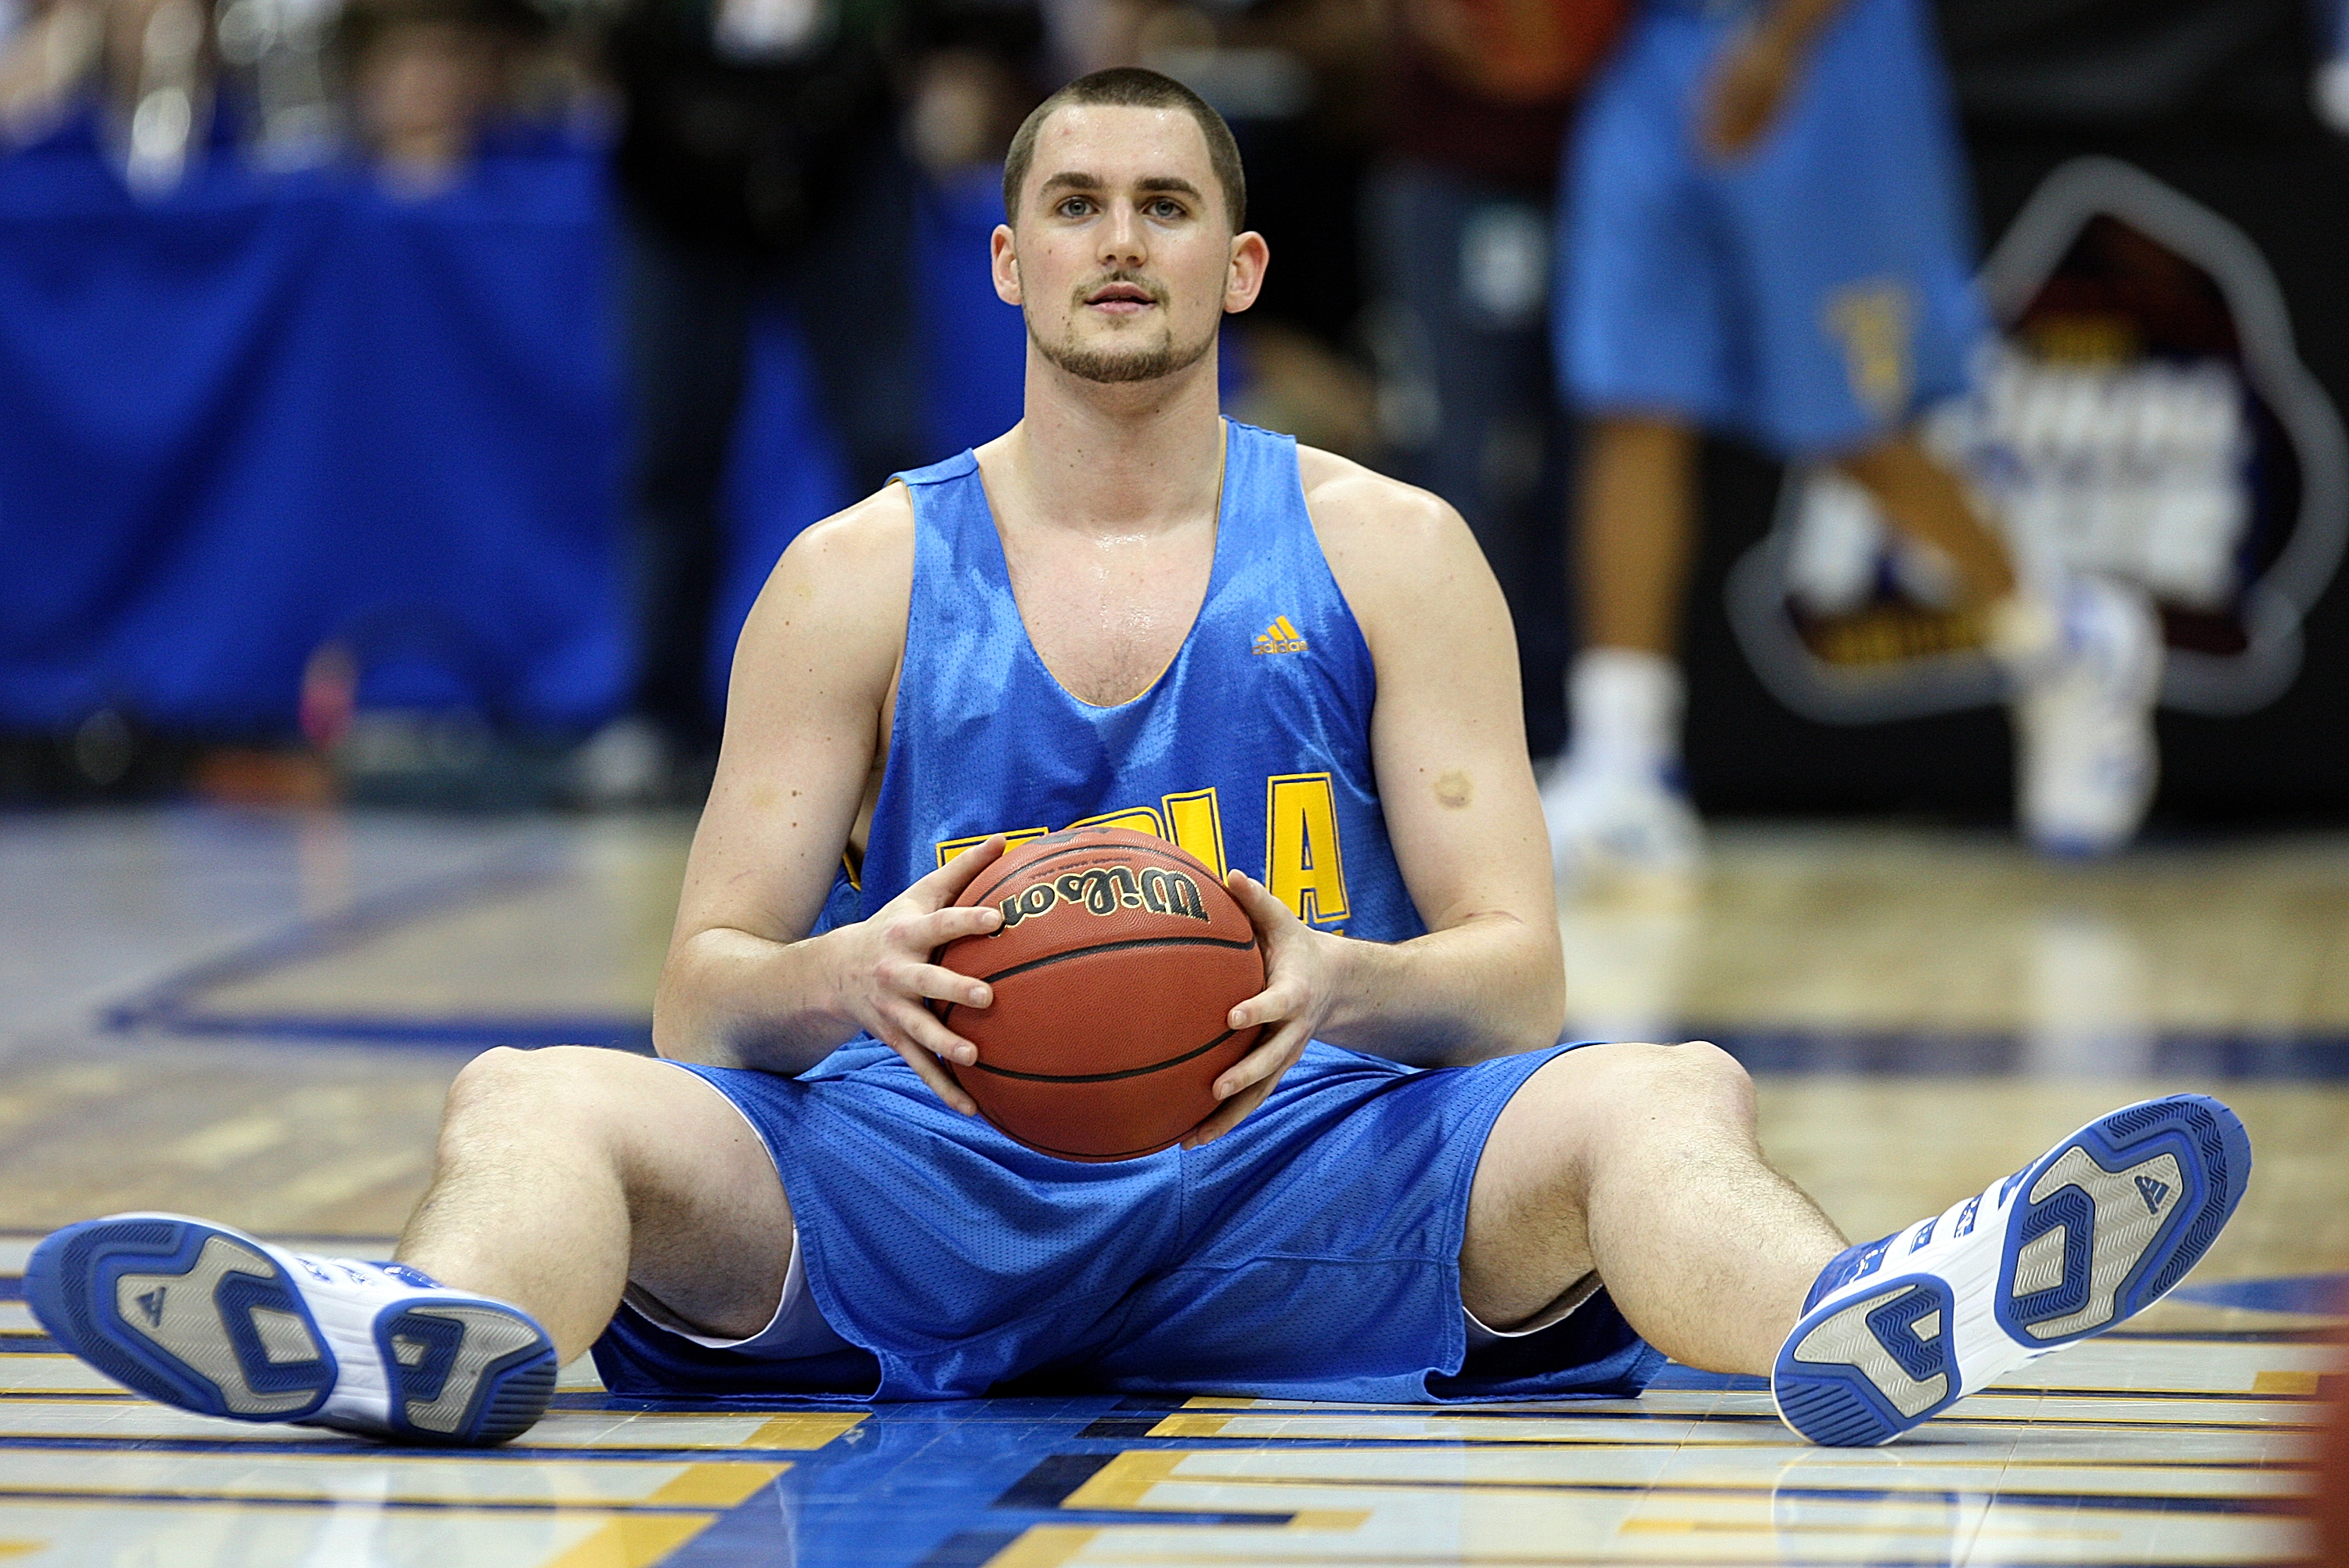 Kevin Love Leaned on John Wooden While at UCLA: 'He's Always Going to Give You the Best Advice'